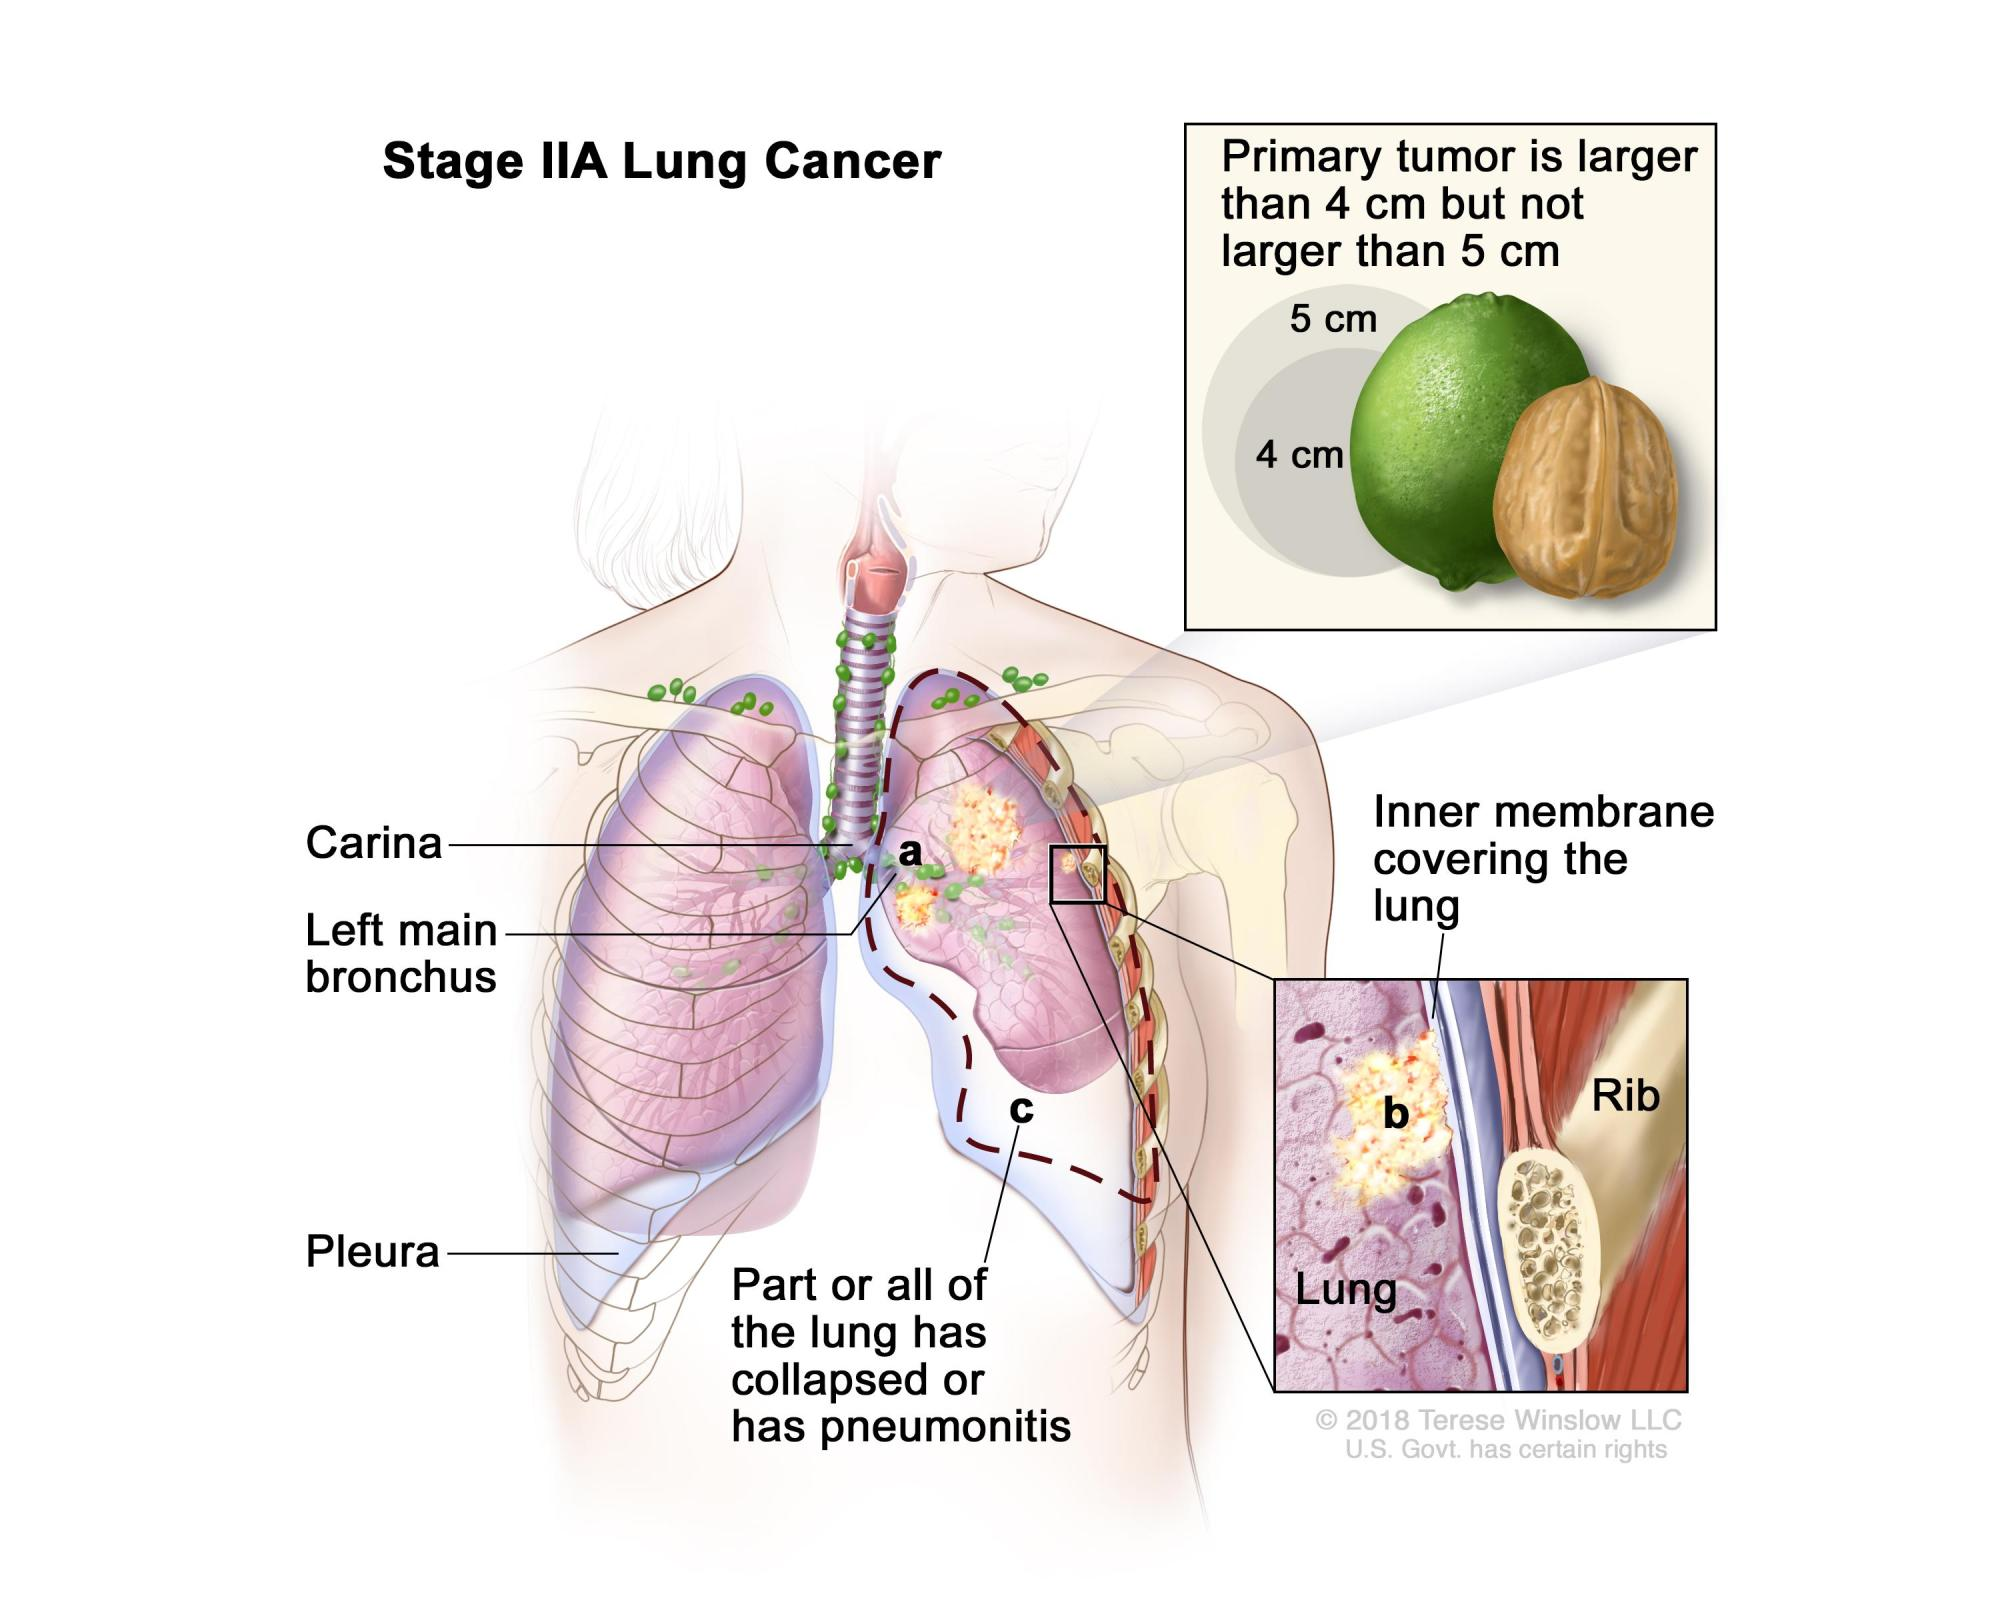 hight resolution of two panel drawing of stage iia non small cell lung cancer first panel